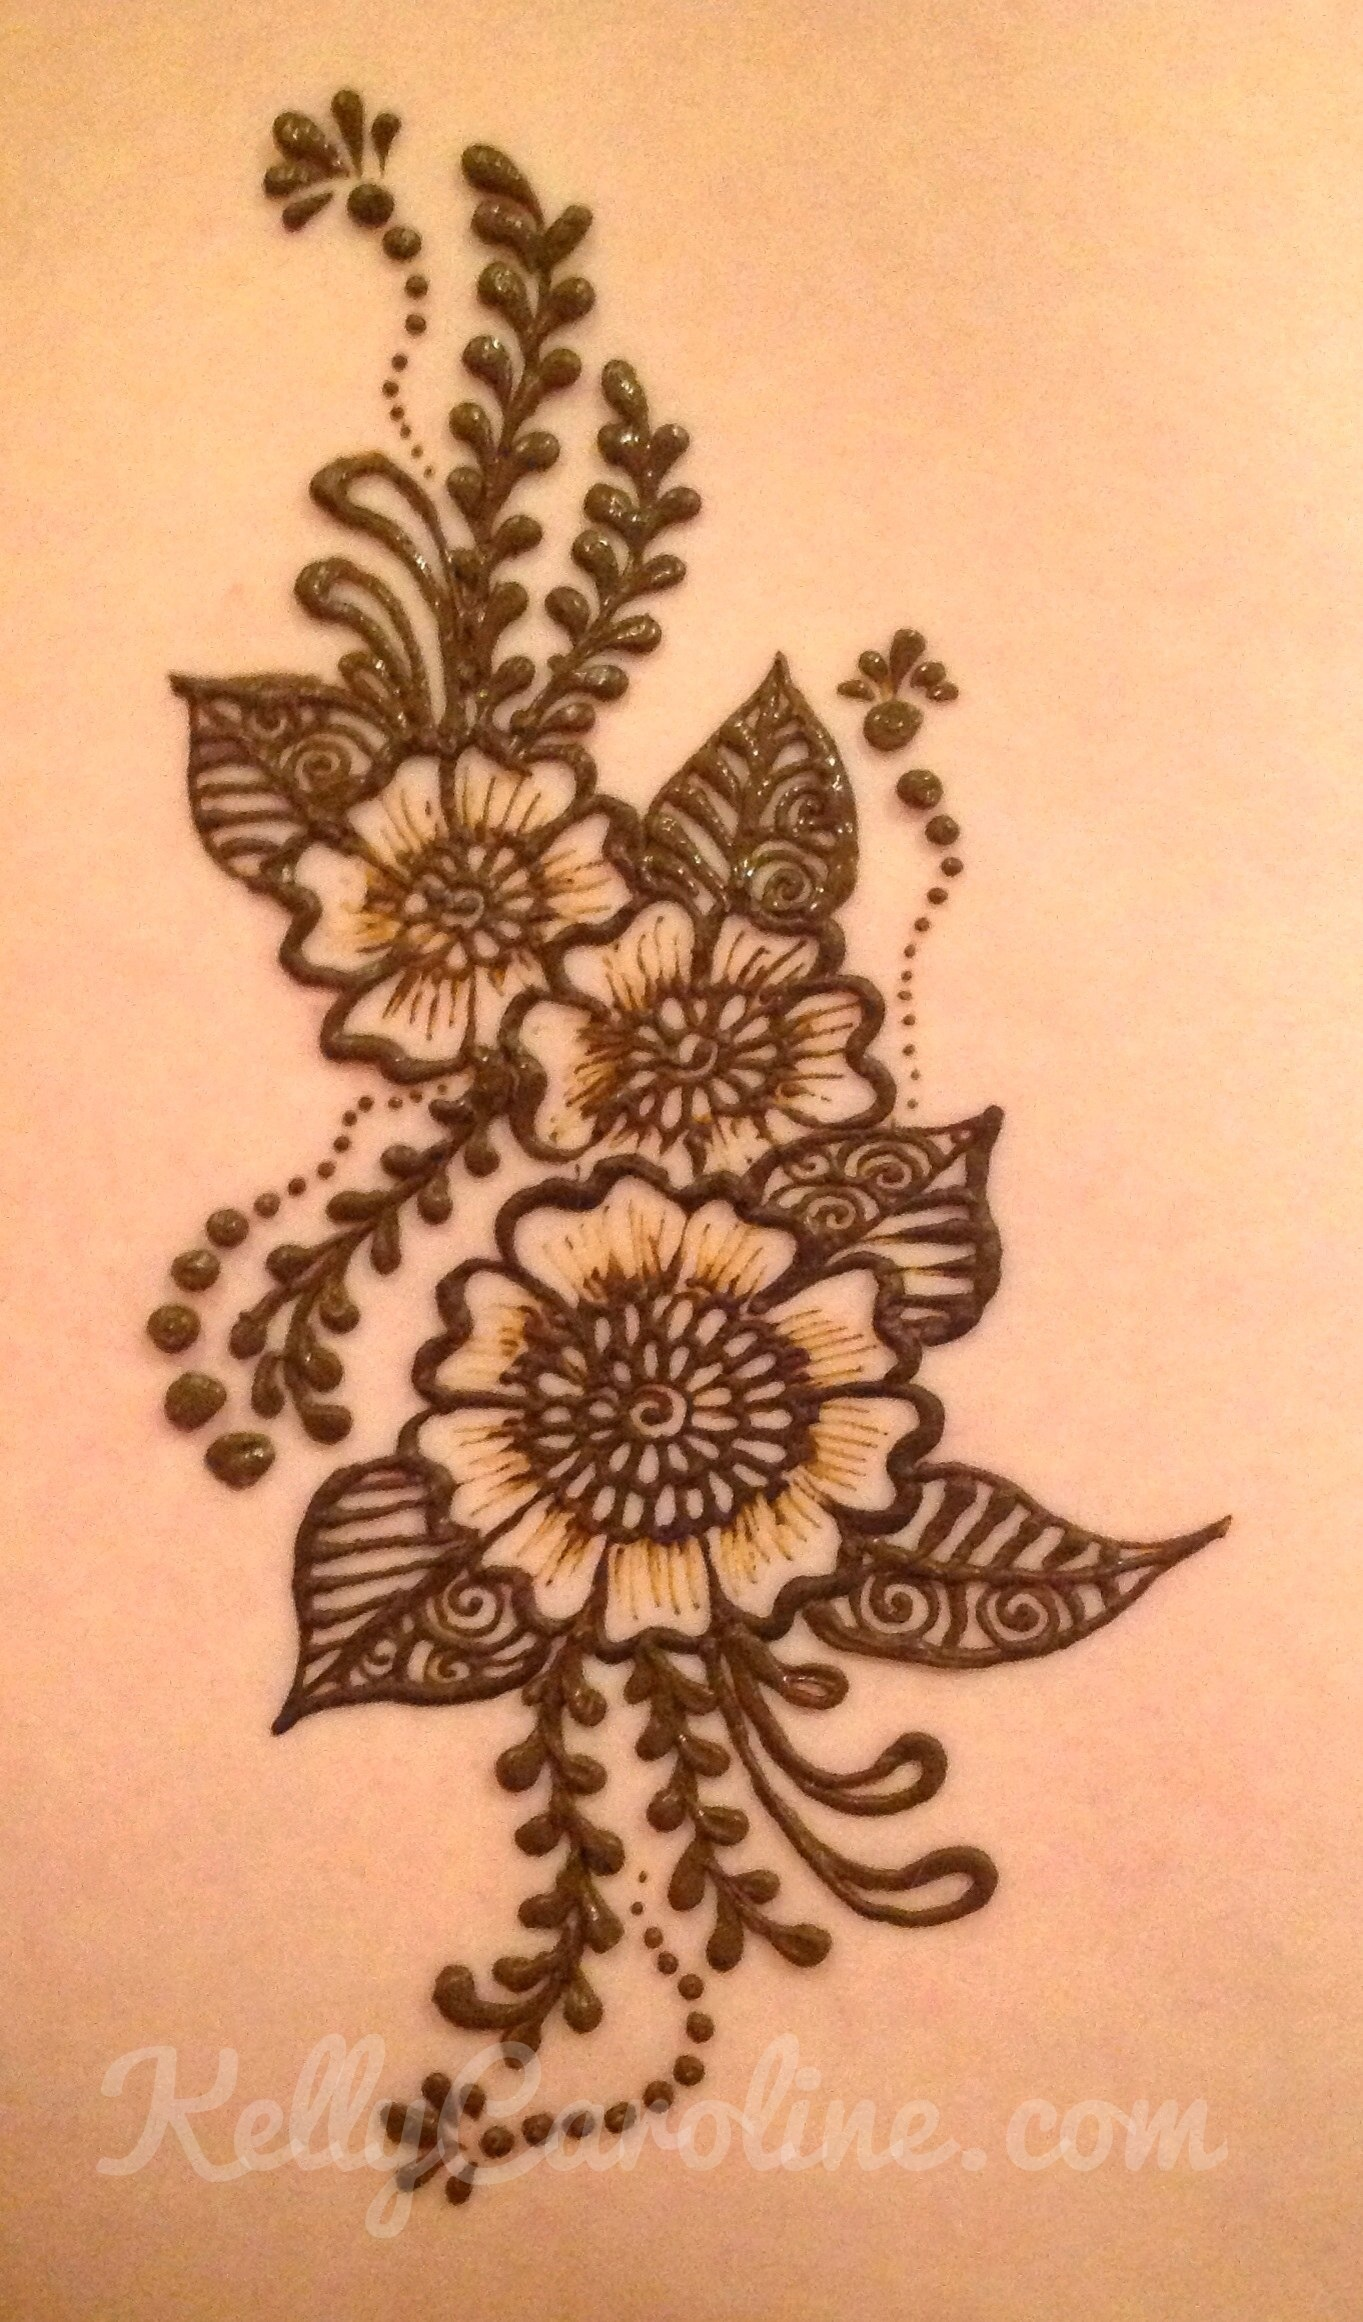 Mehndi Plant Flower : Michigan henna tattoo kelly caroline